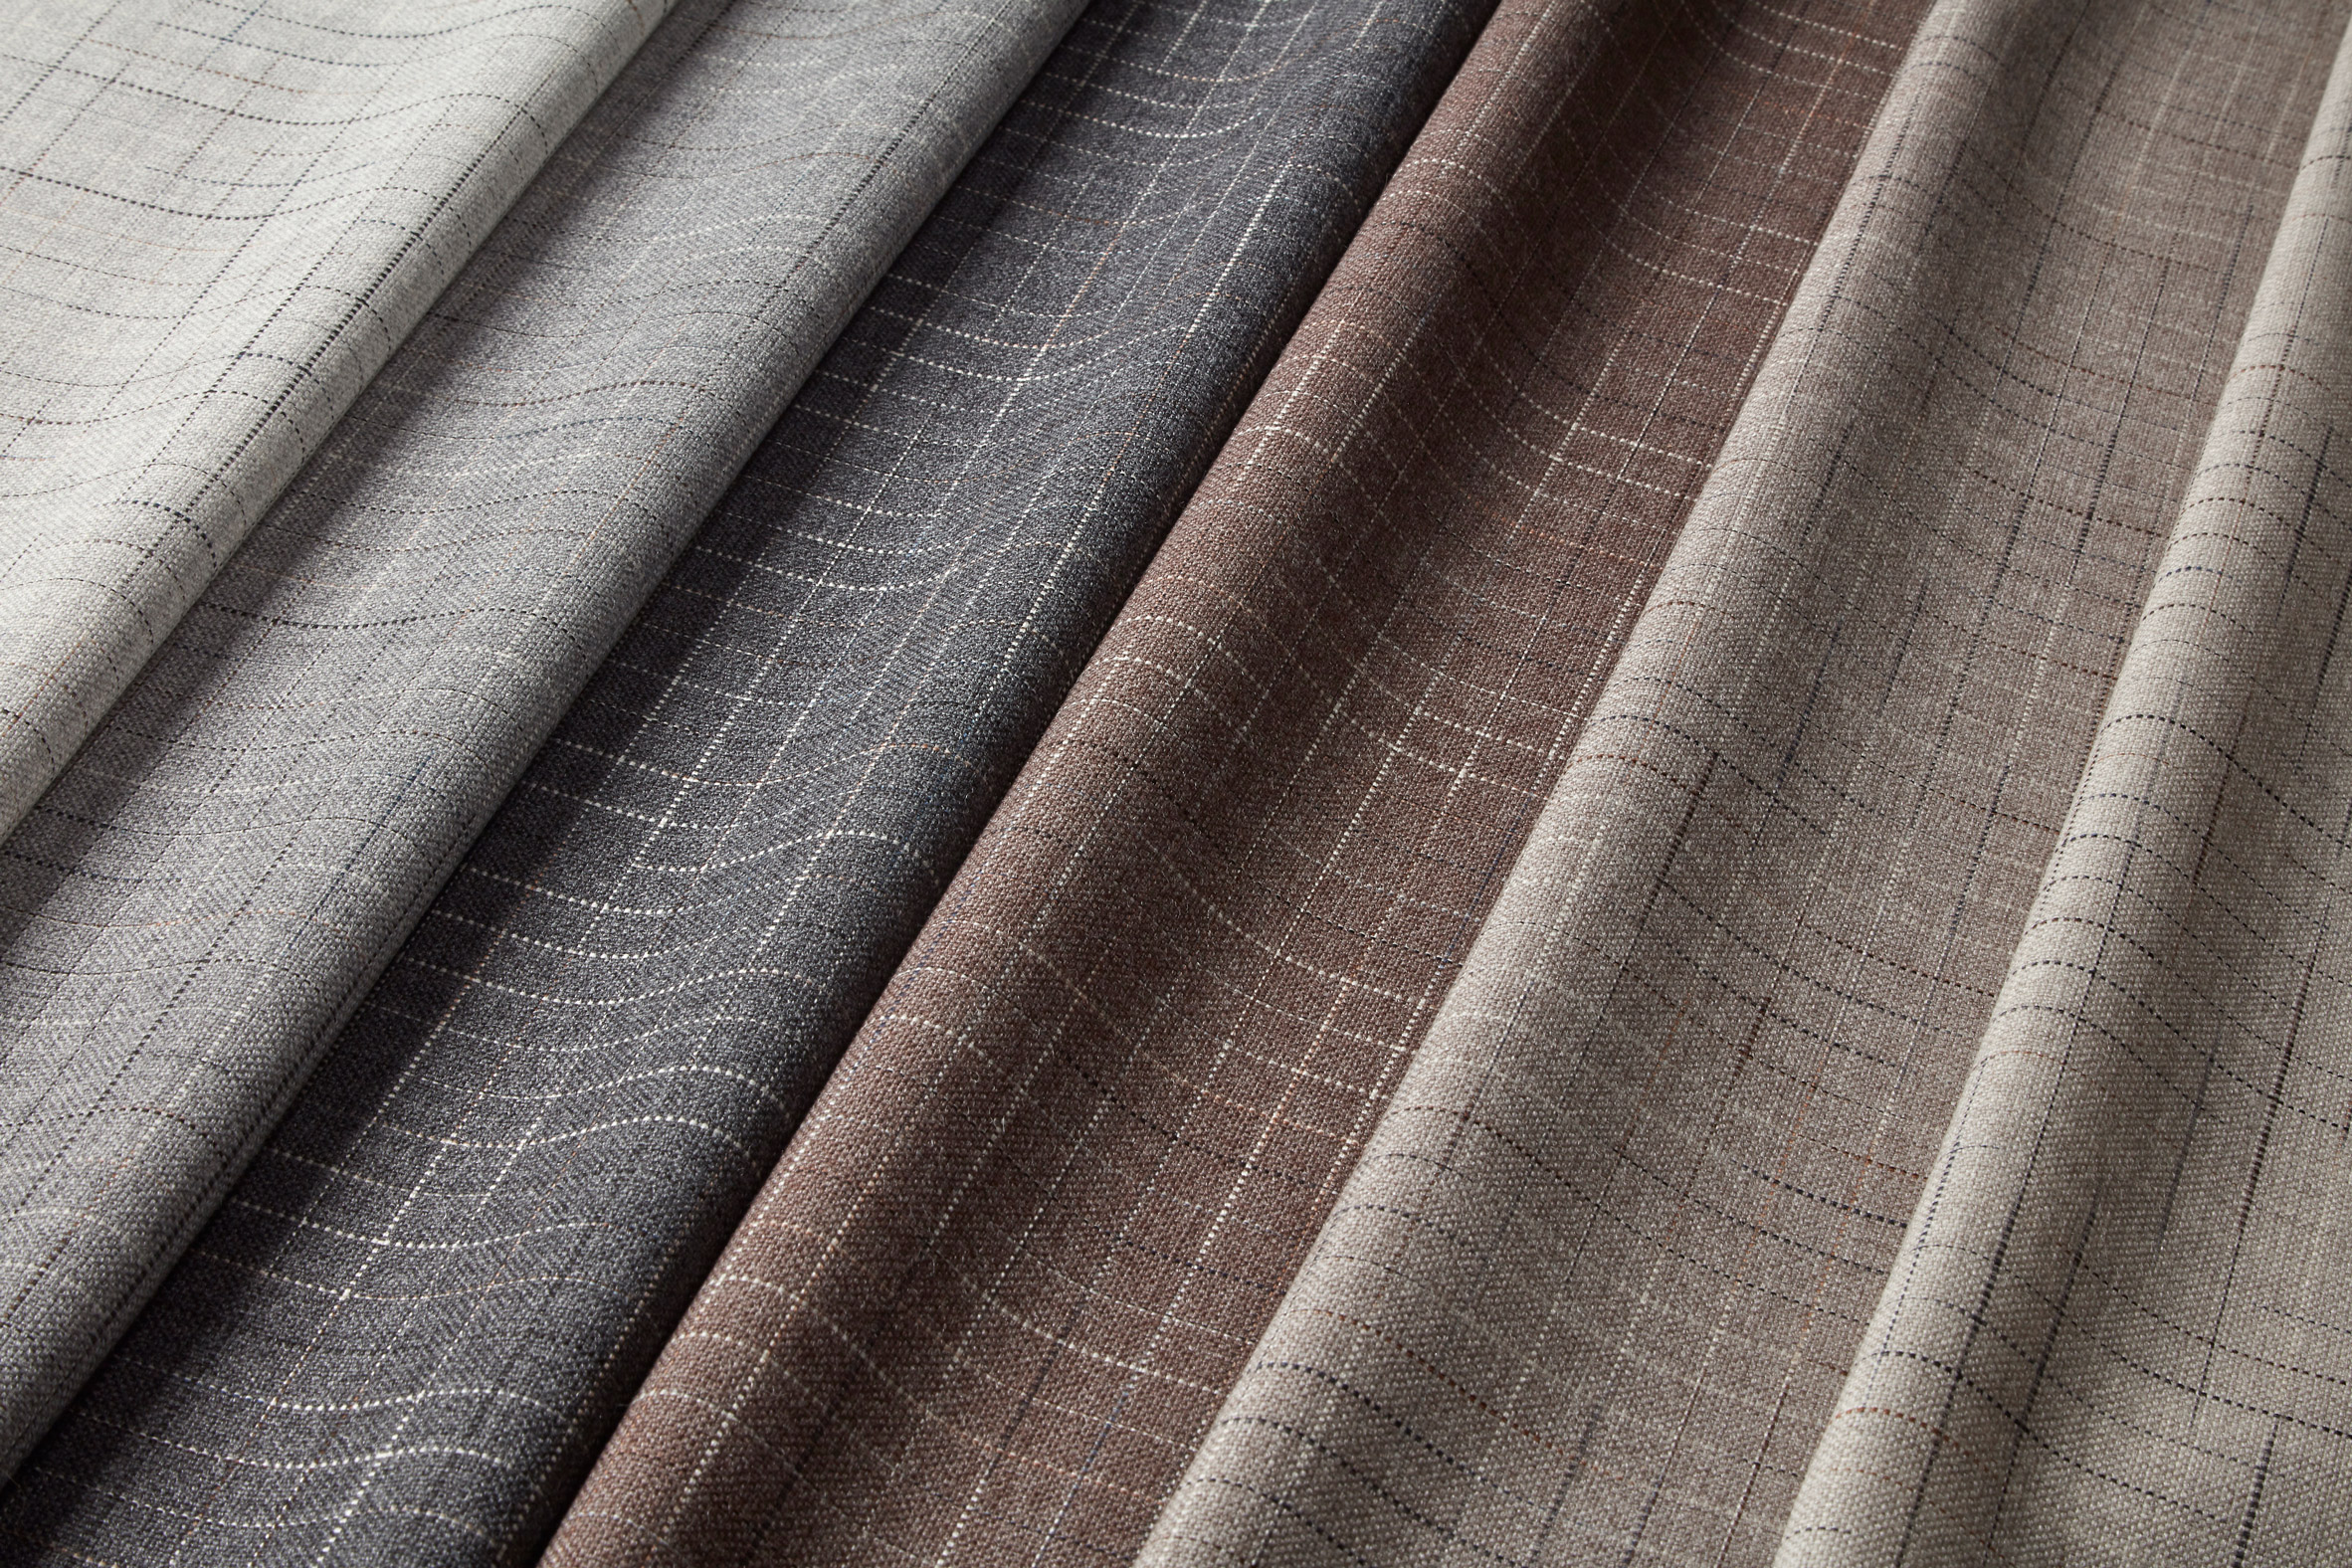 Sumi and Kyoto fabric by Camira